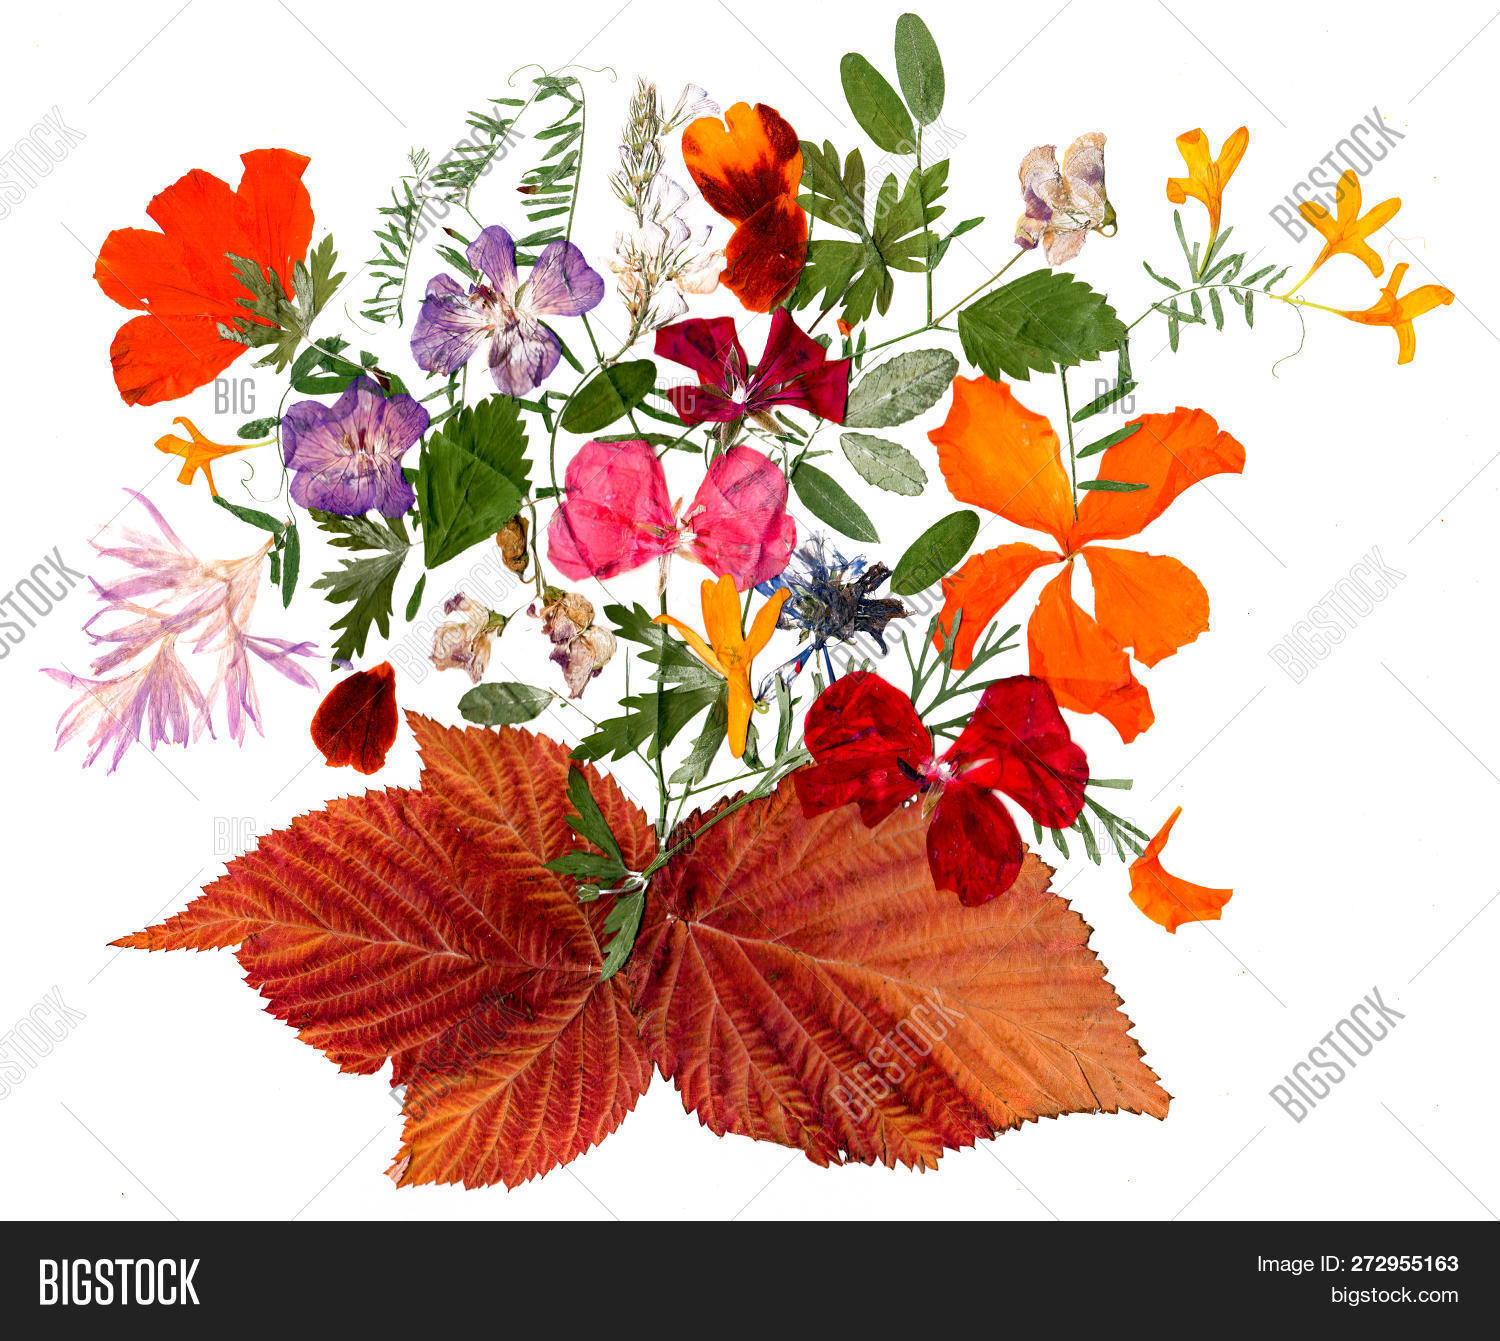 Dried Fall Leaves And Flower Of Plants Isolated On White